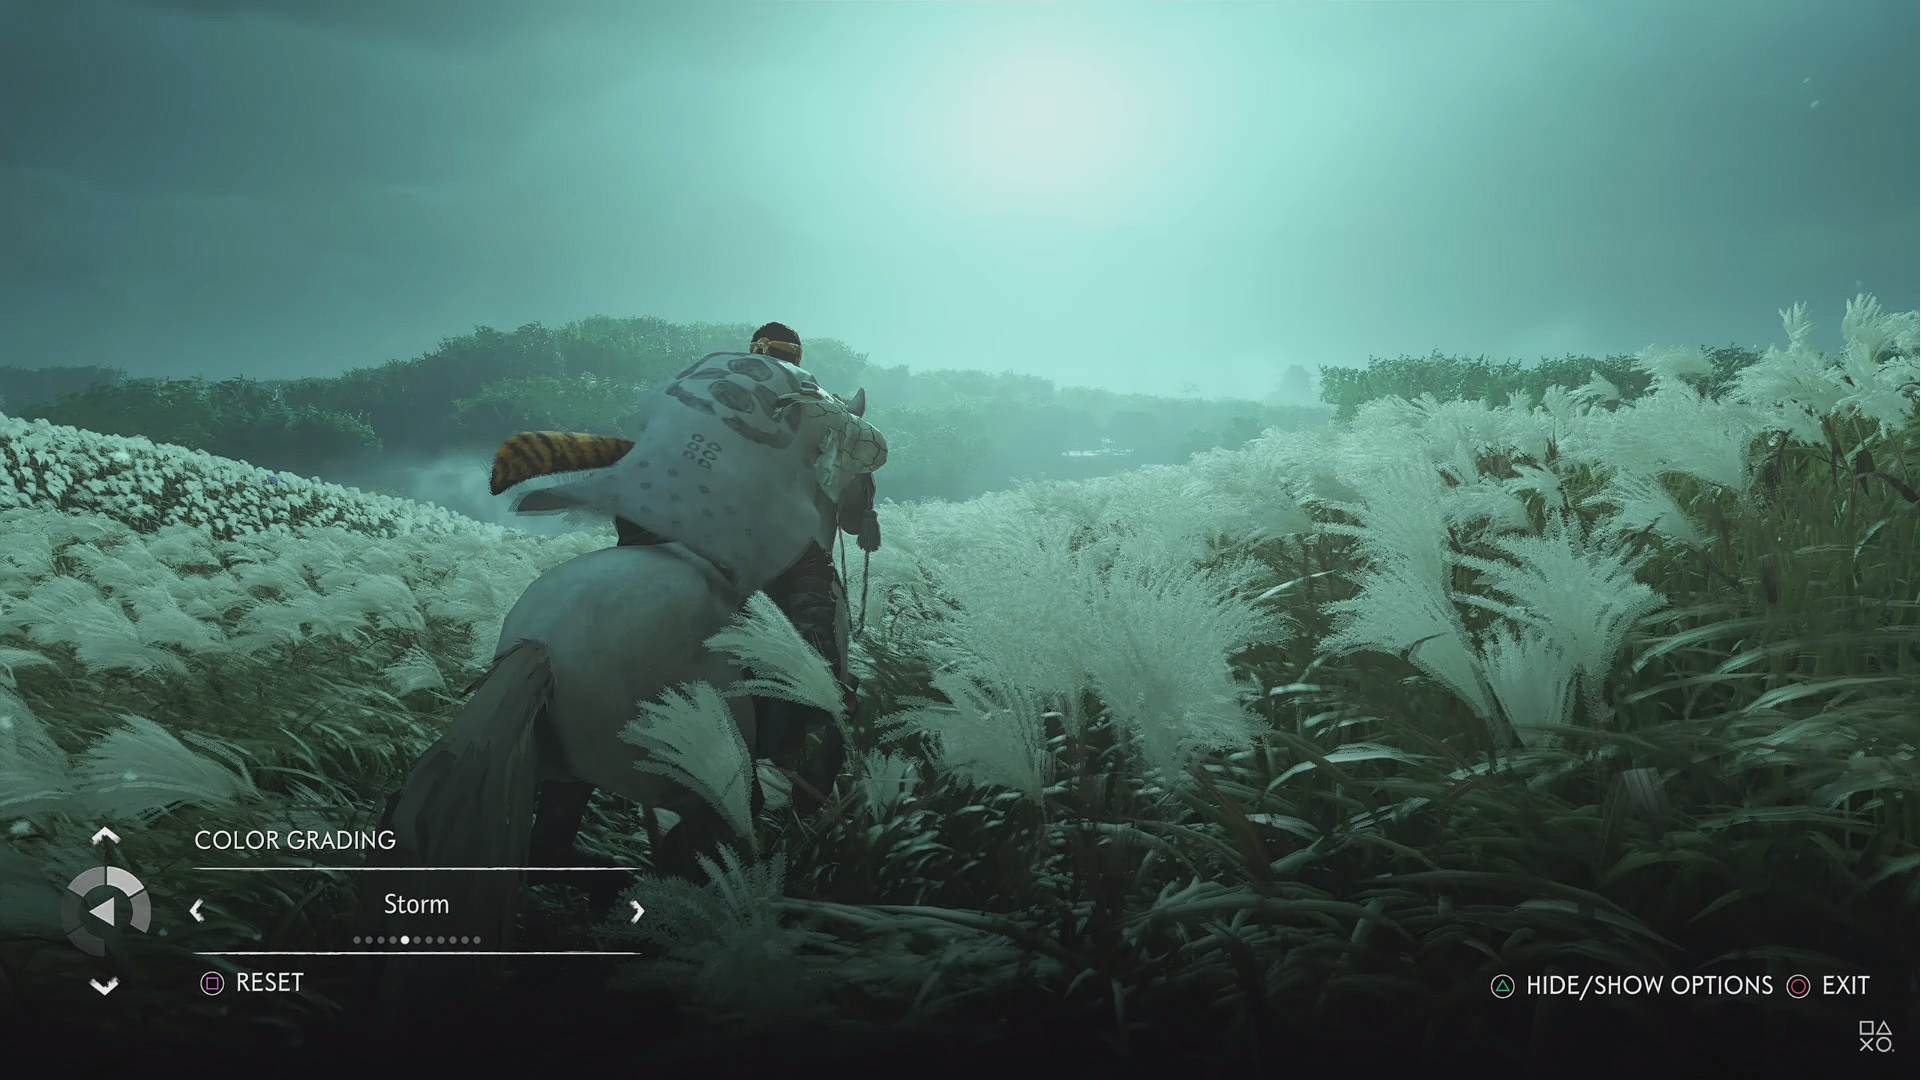 Flipboard: Ghost of Tsushima's Photo Mode is Incredible | Game Rant